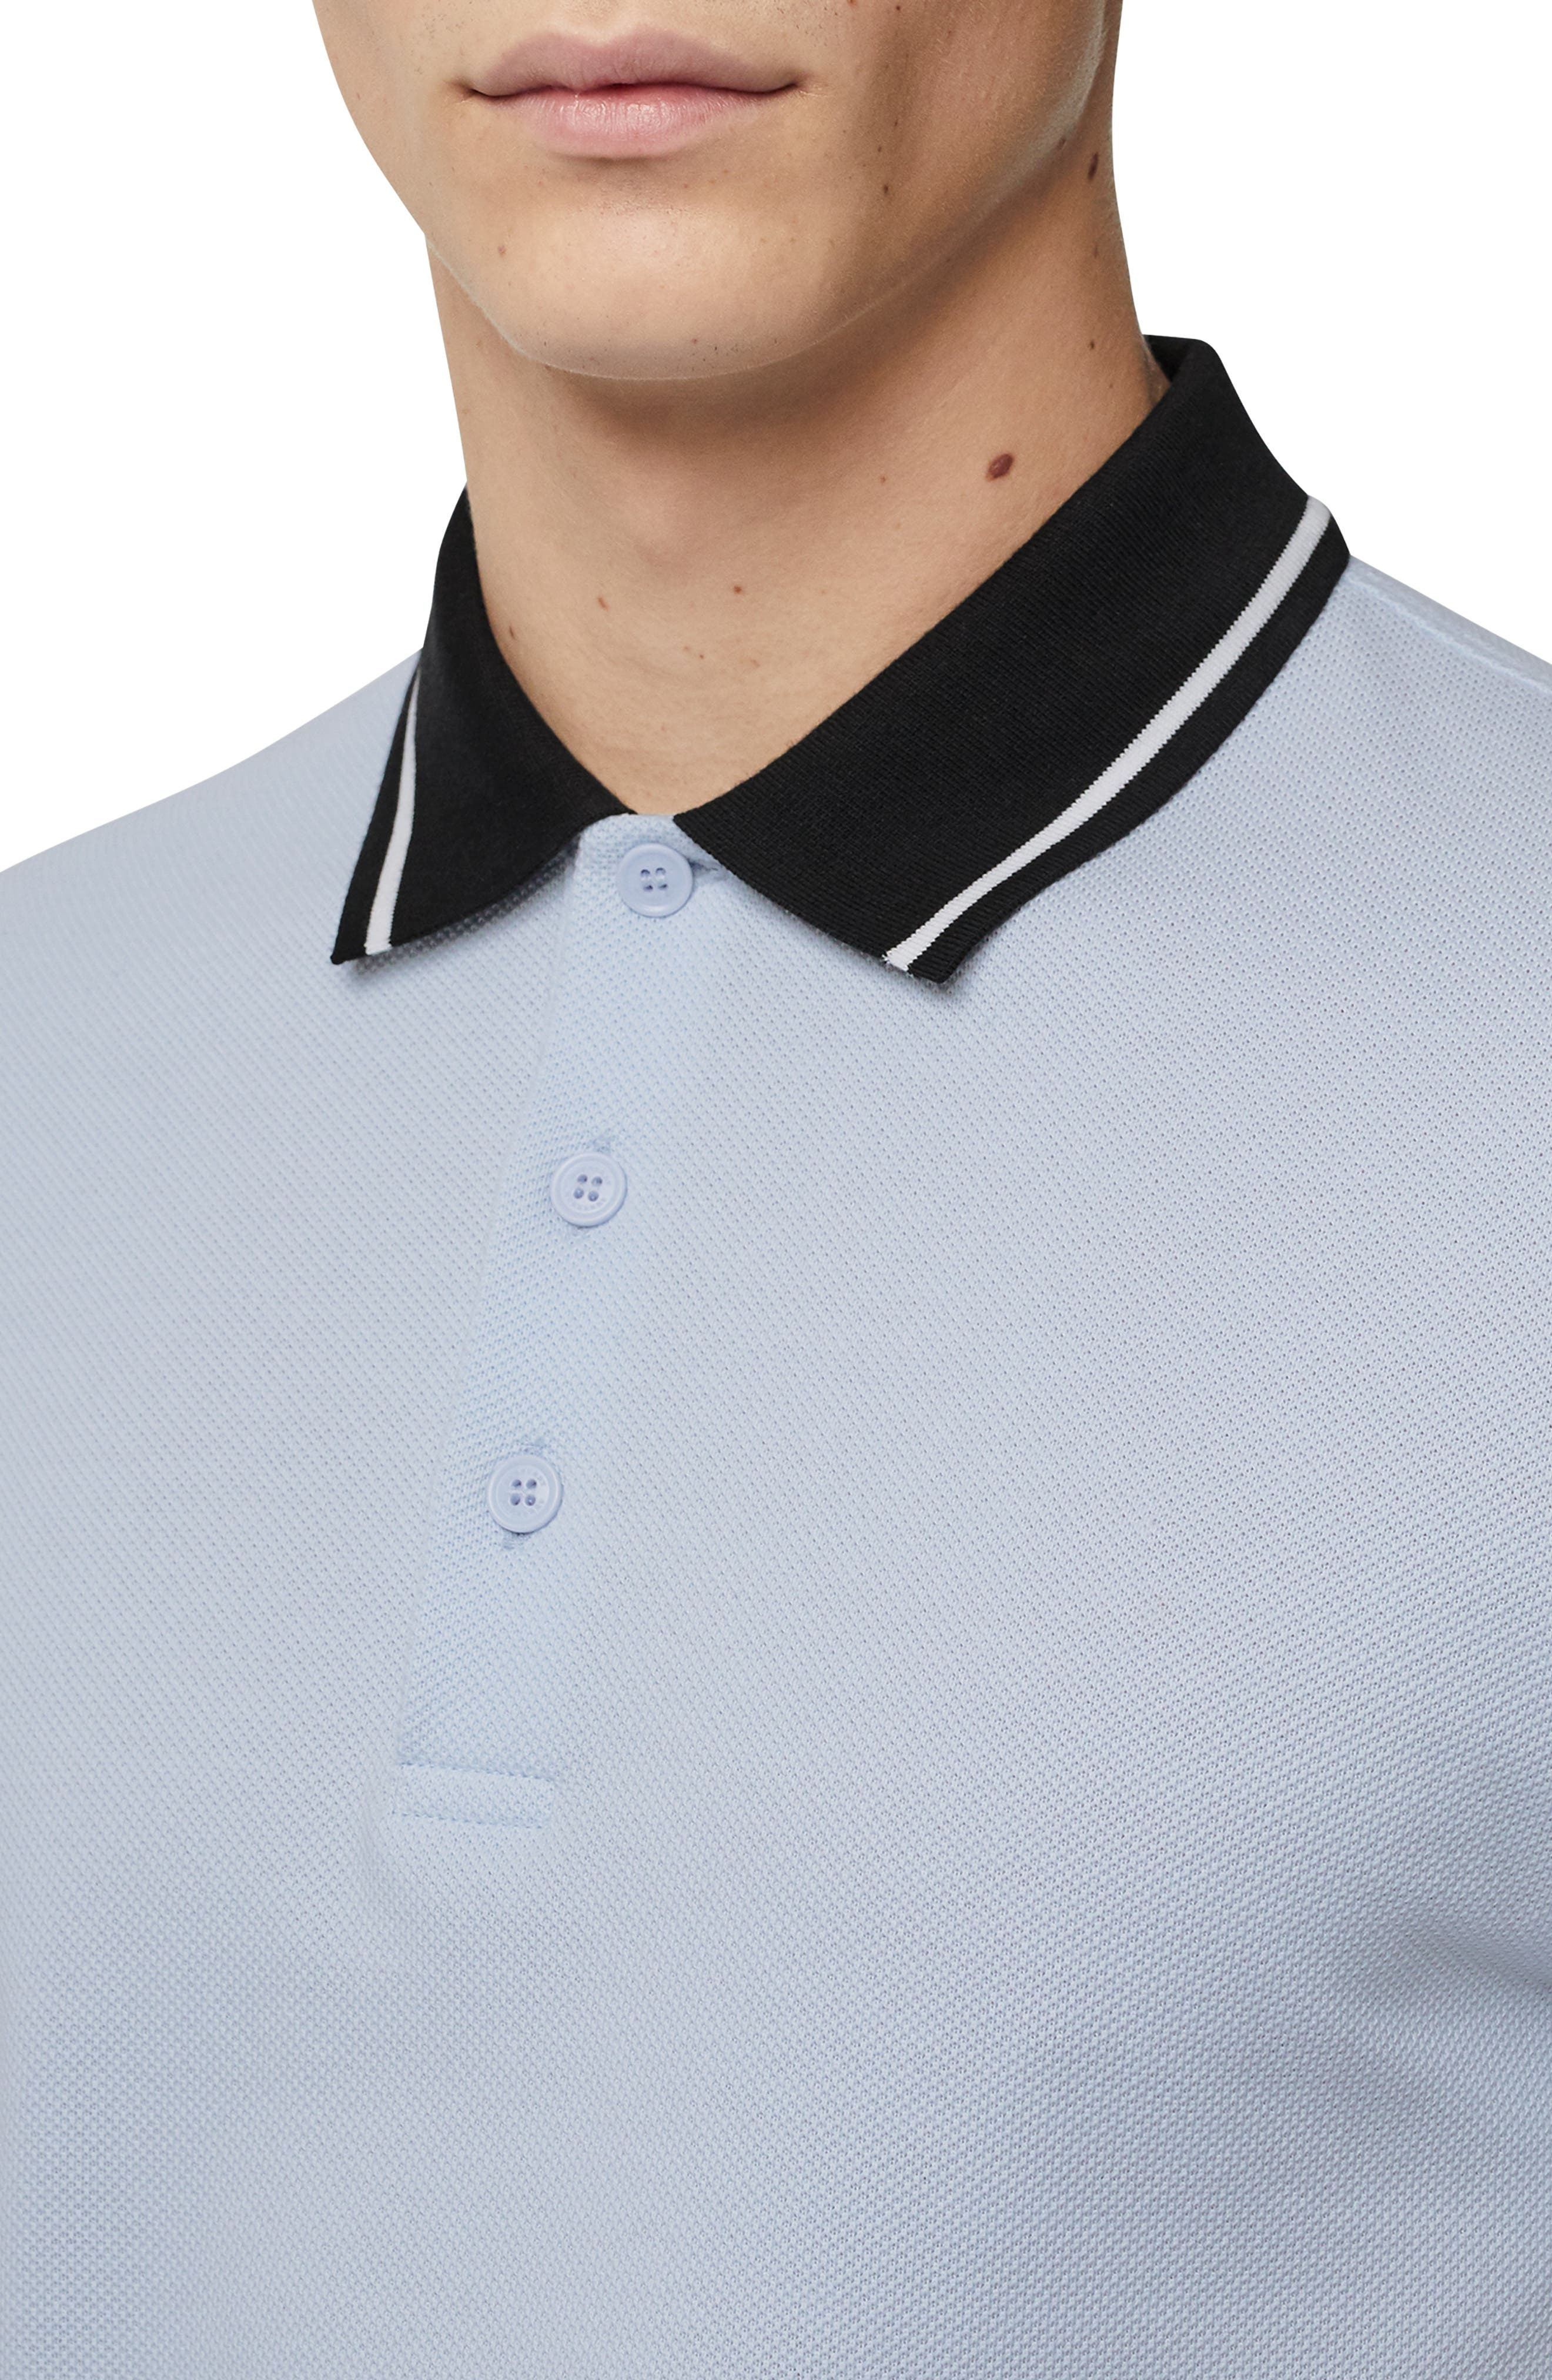 BURBERRY,                             Moreton Polo,                             Alternate thumbnail 3, color,                             LIGHT INDIGO